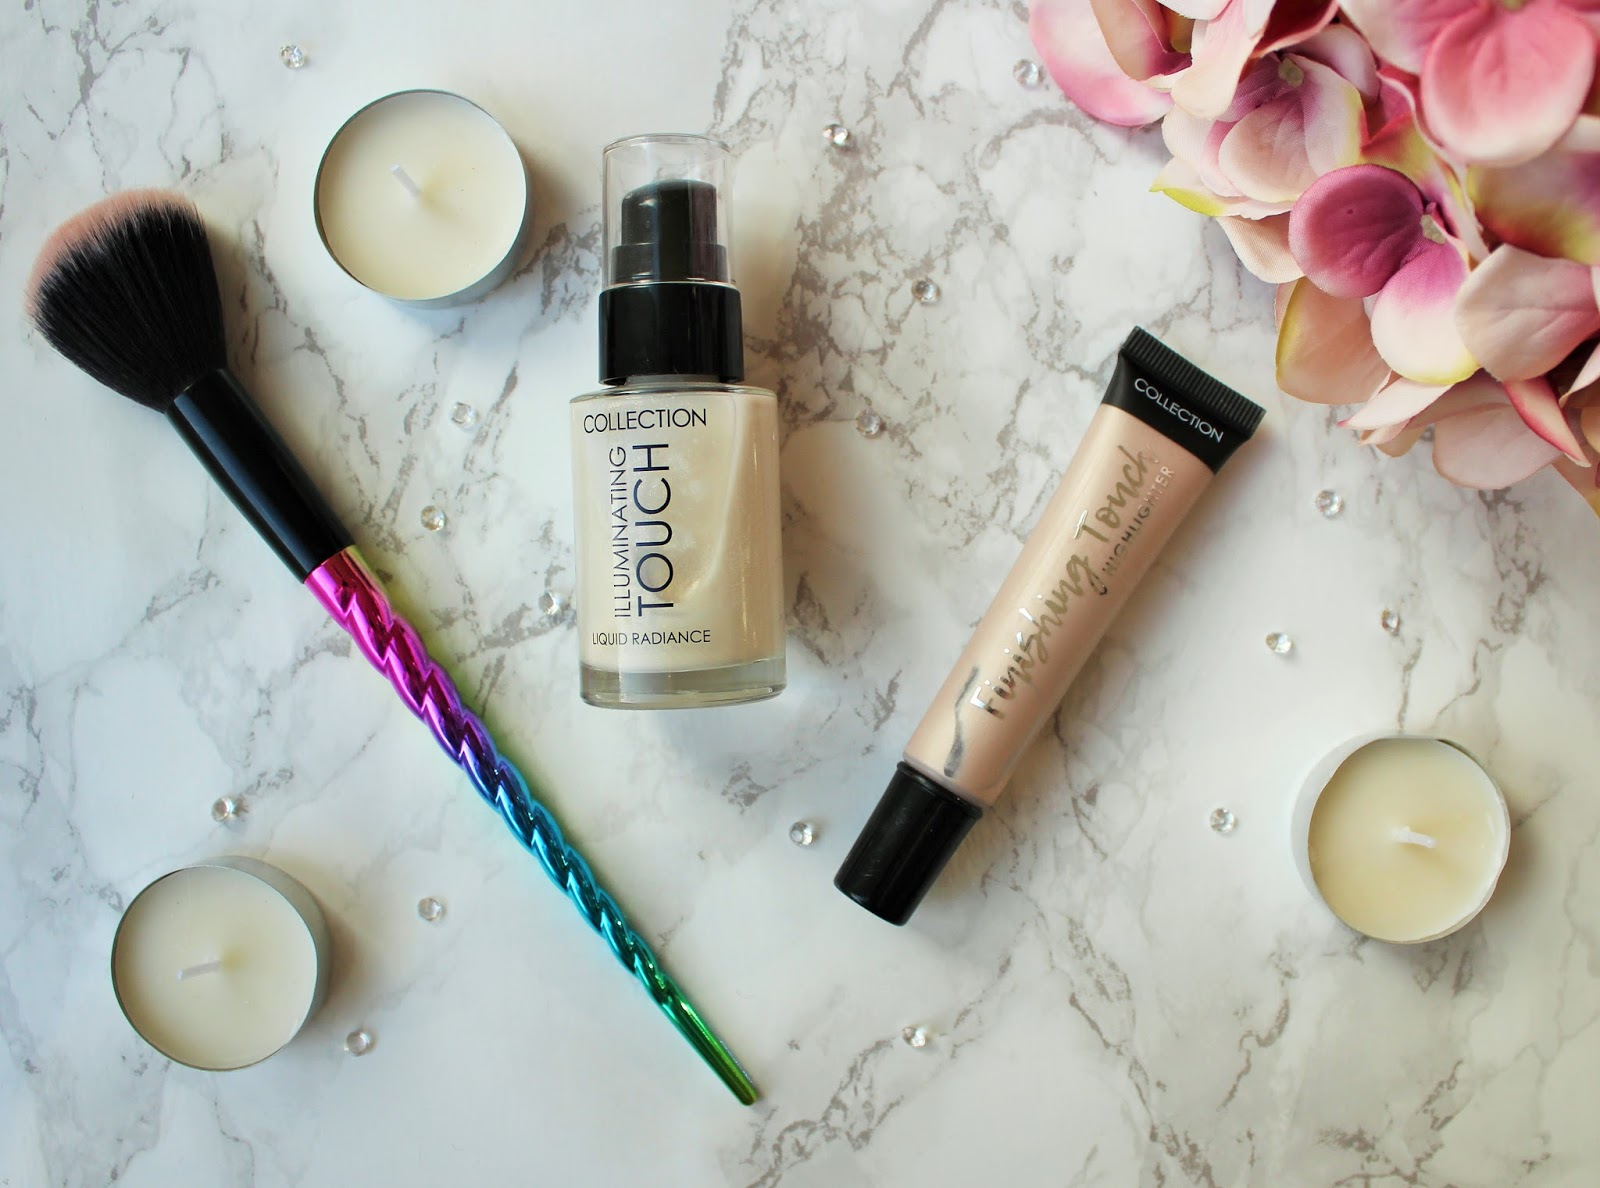 Two Affordable Makeup Products For Glowing Skin - 2